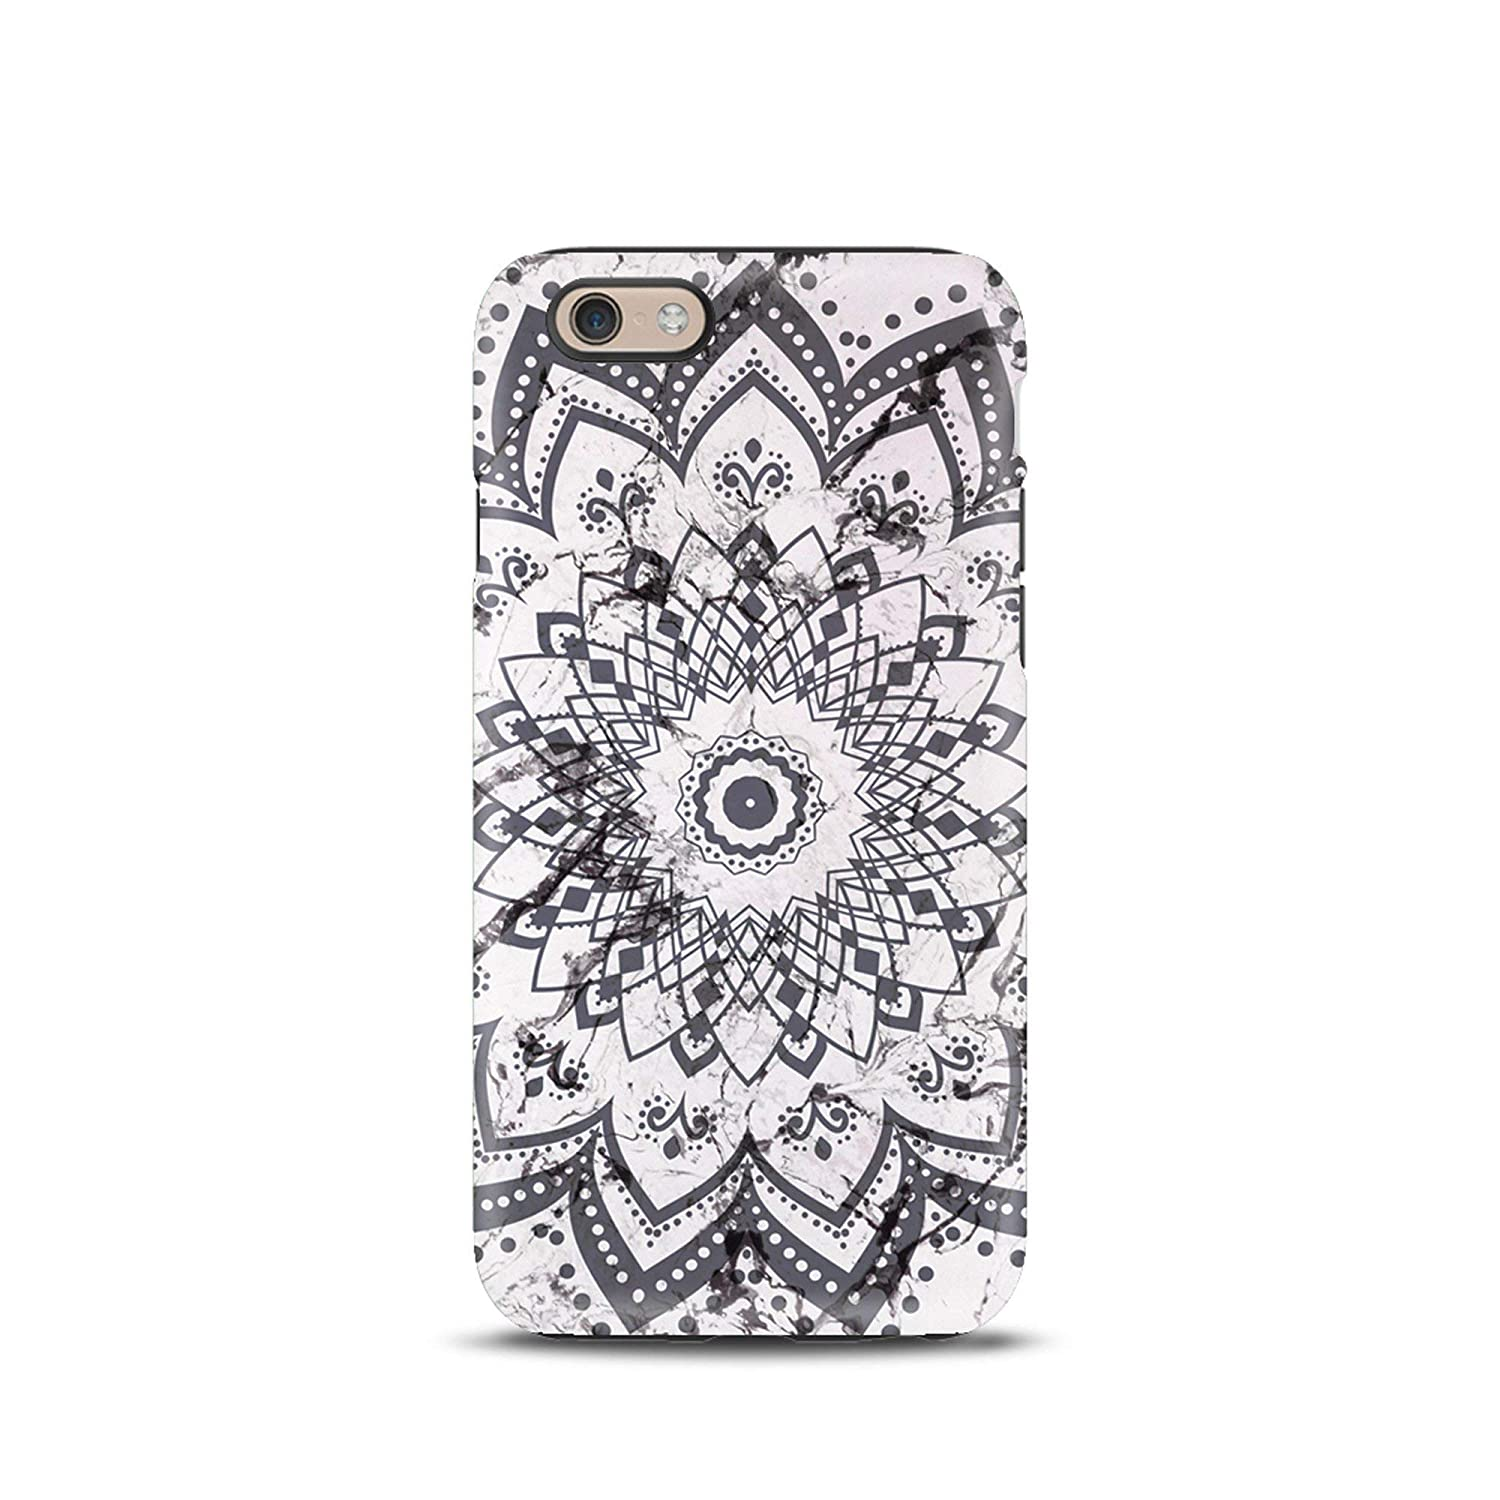 Mandala Marble Boho cover case TPU Tough for iPhone 5, 5s, 6, 6s, 7, 7 plus, 8, 8 plus, X, XS, for Galaxy S6, S7, S8